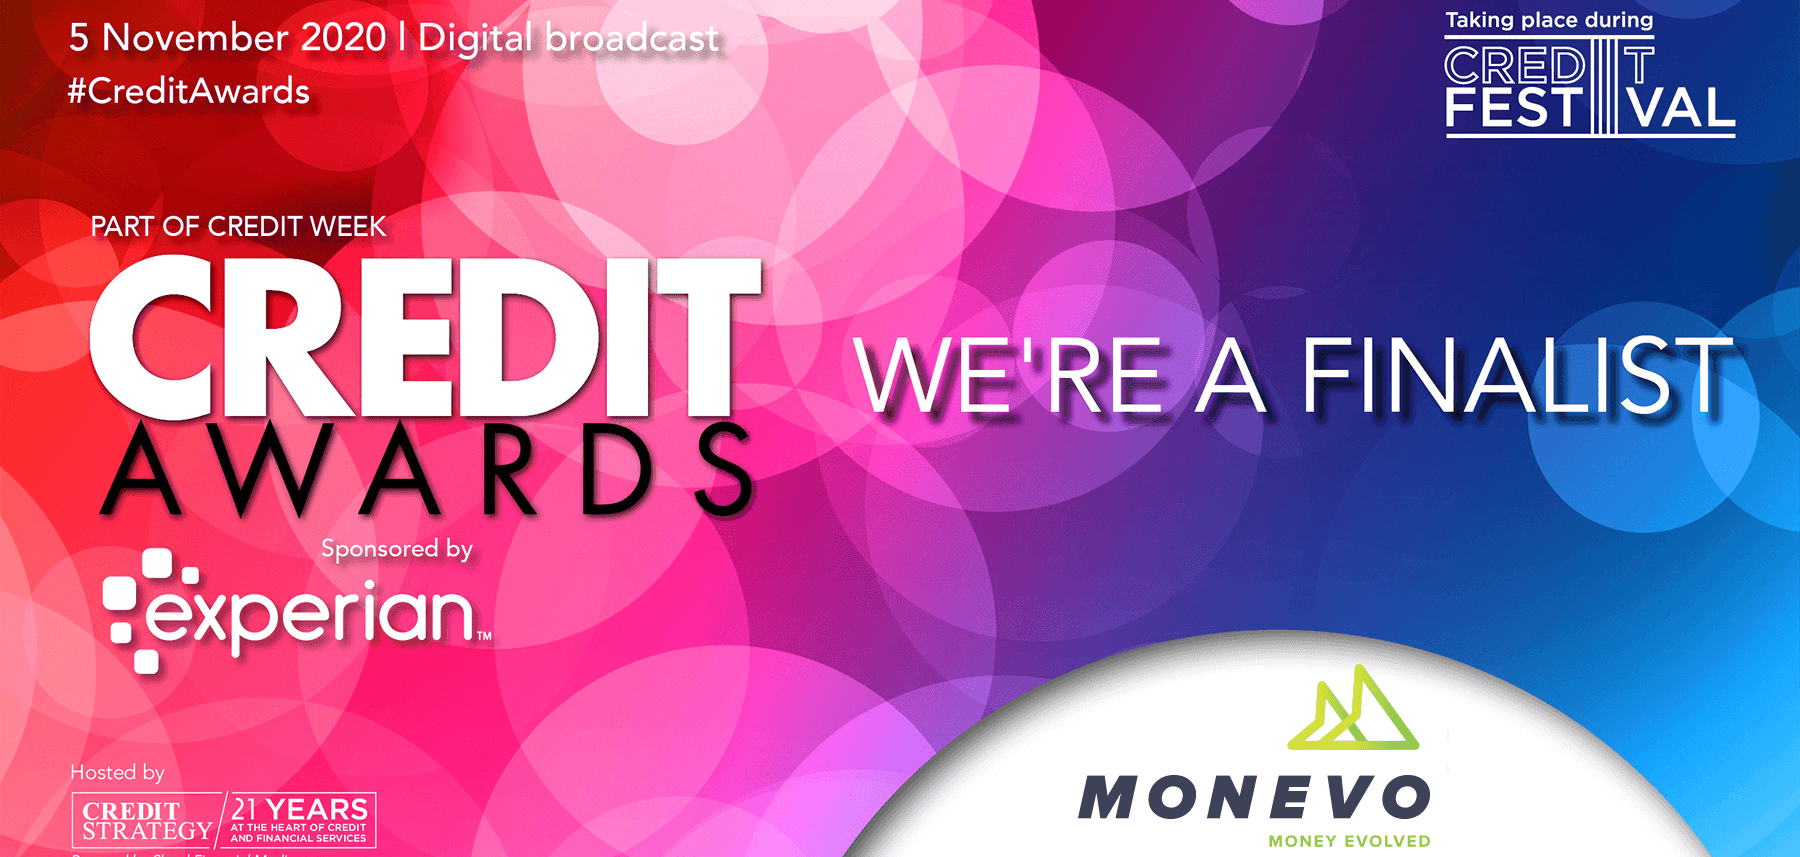 Monevo announced as finalist in Credit Awards 2020